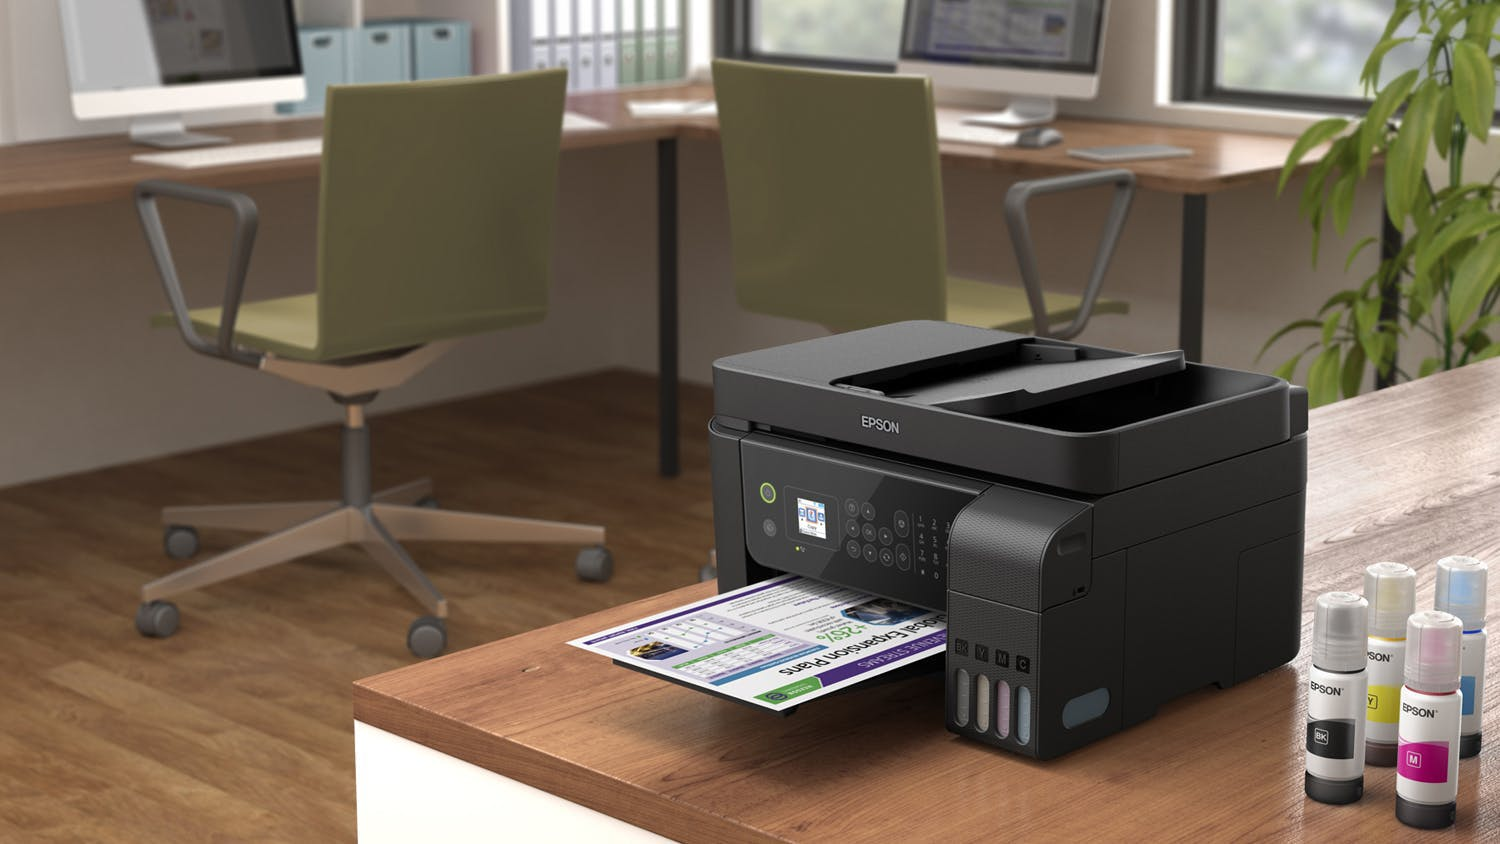 Epson WorkForce EcoTank ET-4700 All-in-One Printer